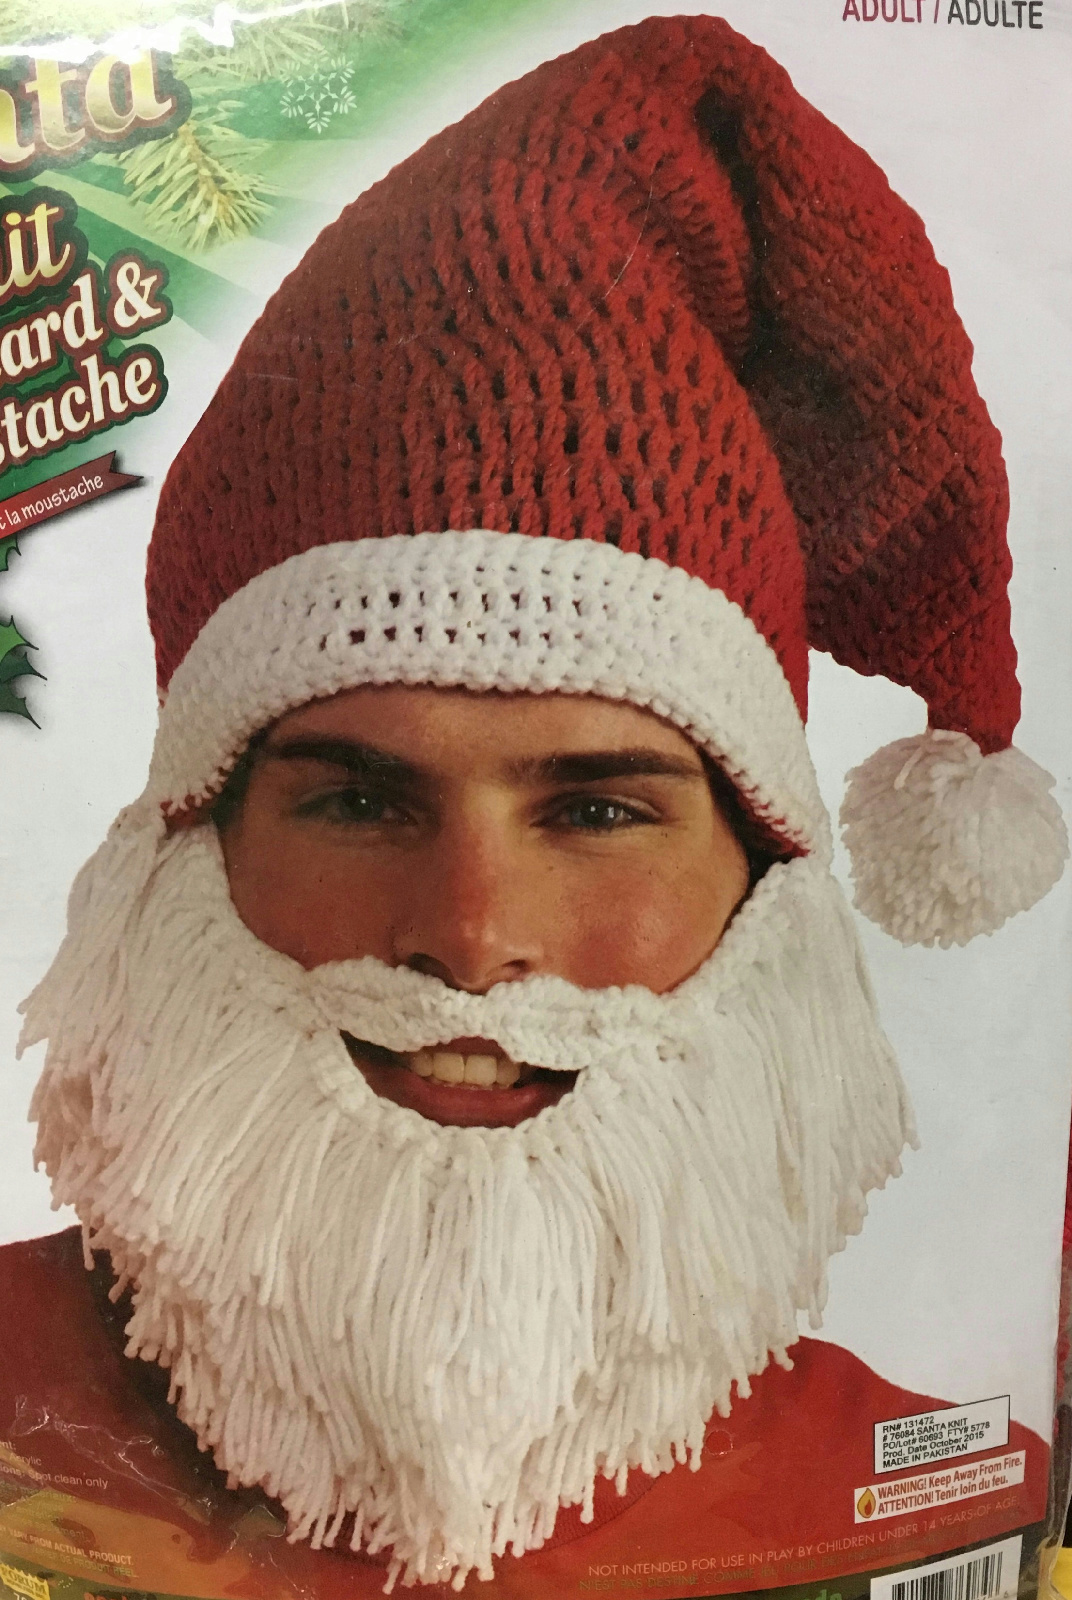 Details about Santa Claus Knit Hat with Attached Beard and Mustache Fun  Christmas Accessory 53d253d5a4a